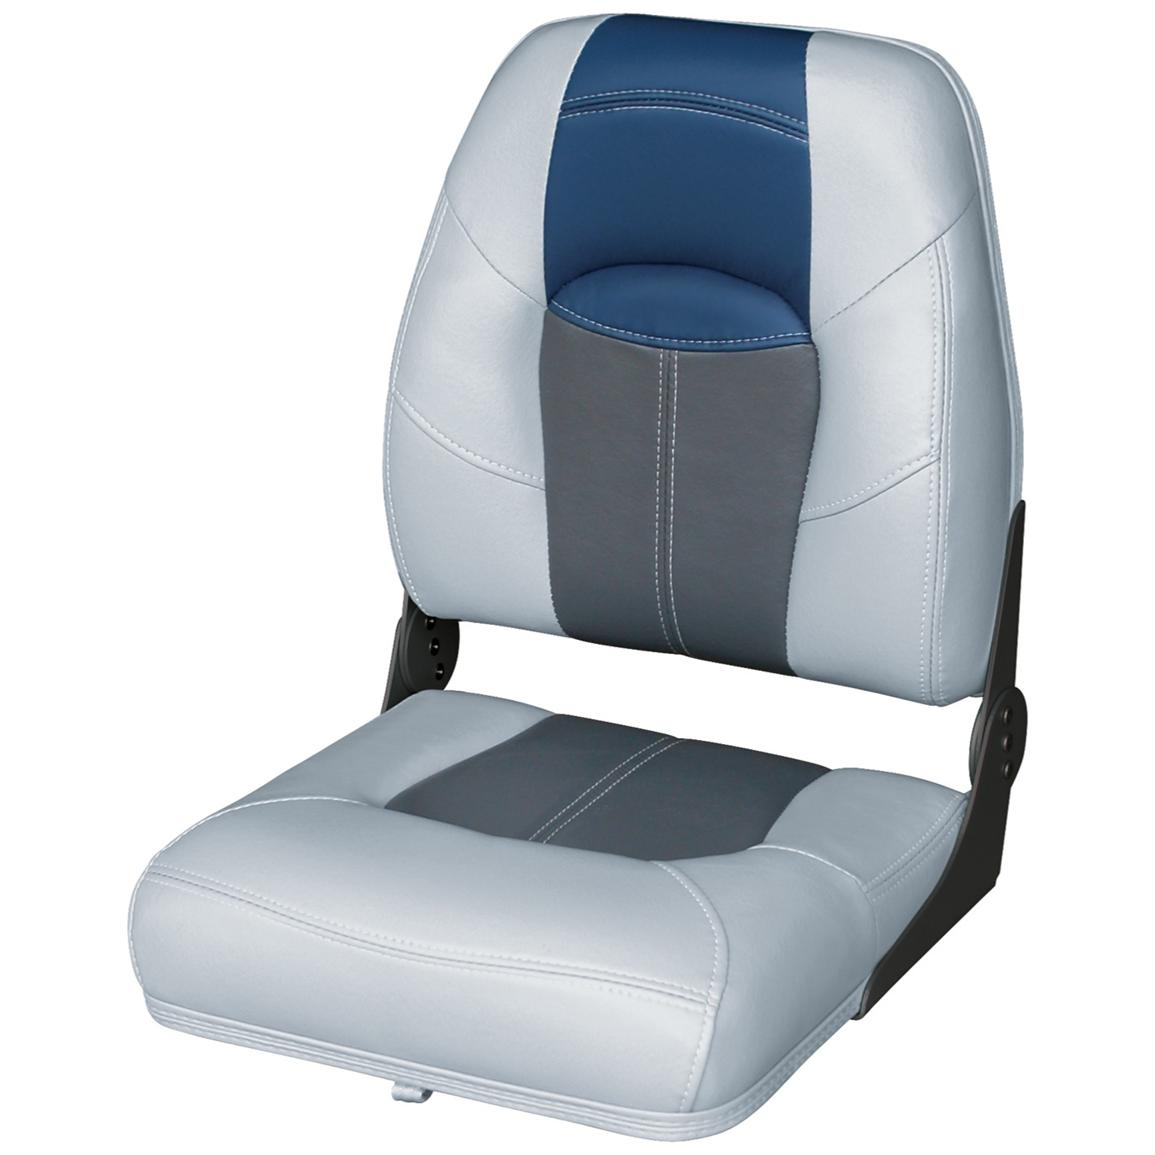 Wise® Blast-Off™ Series High Back Folding Boat Seat, Grey / Charcoal / Blue